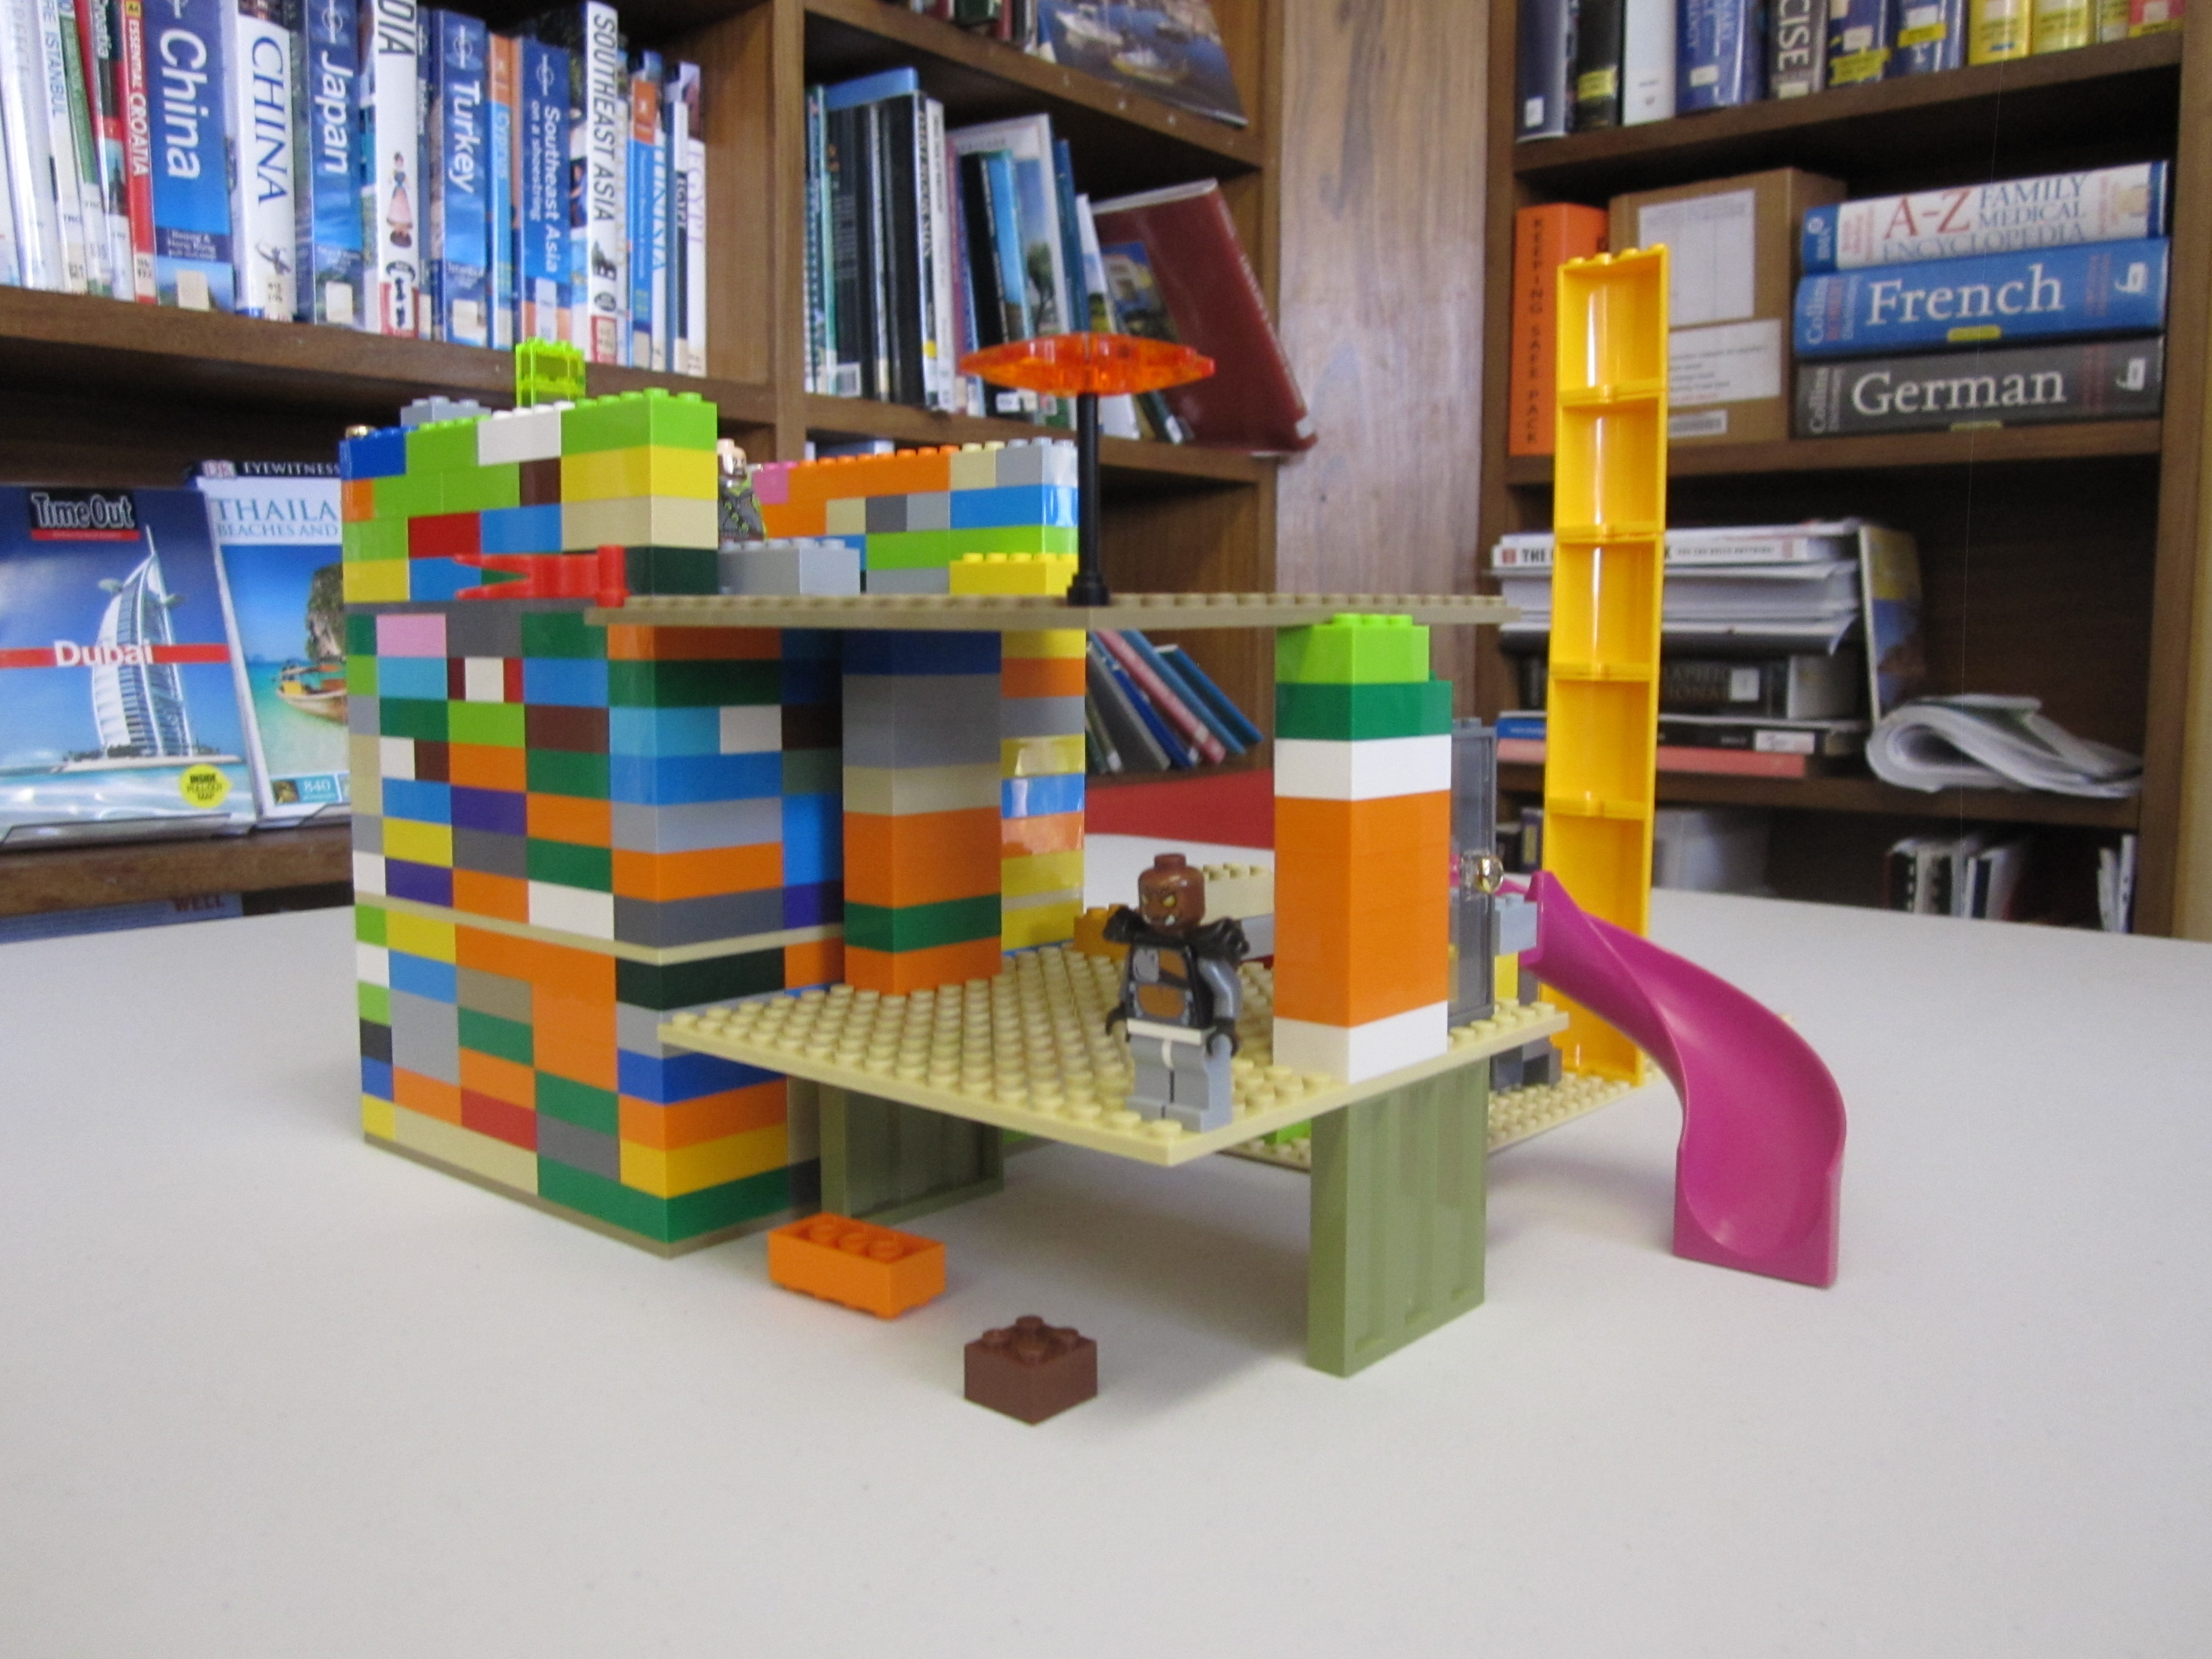 LEGO table available on Wednesdays during opening hours at the Library. Completely free, just pop along.